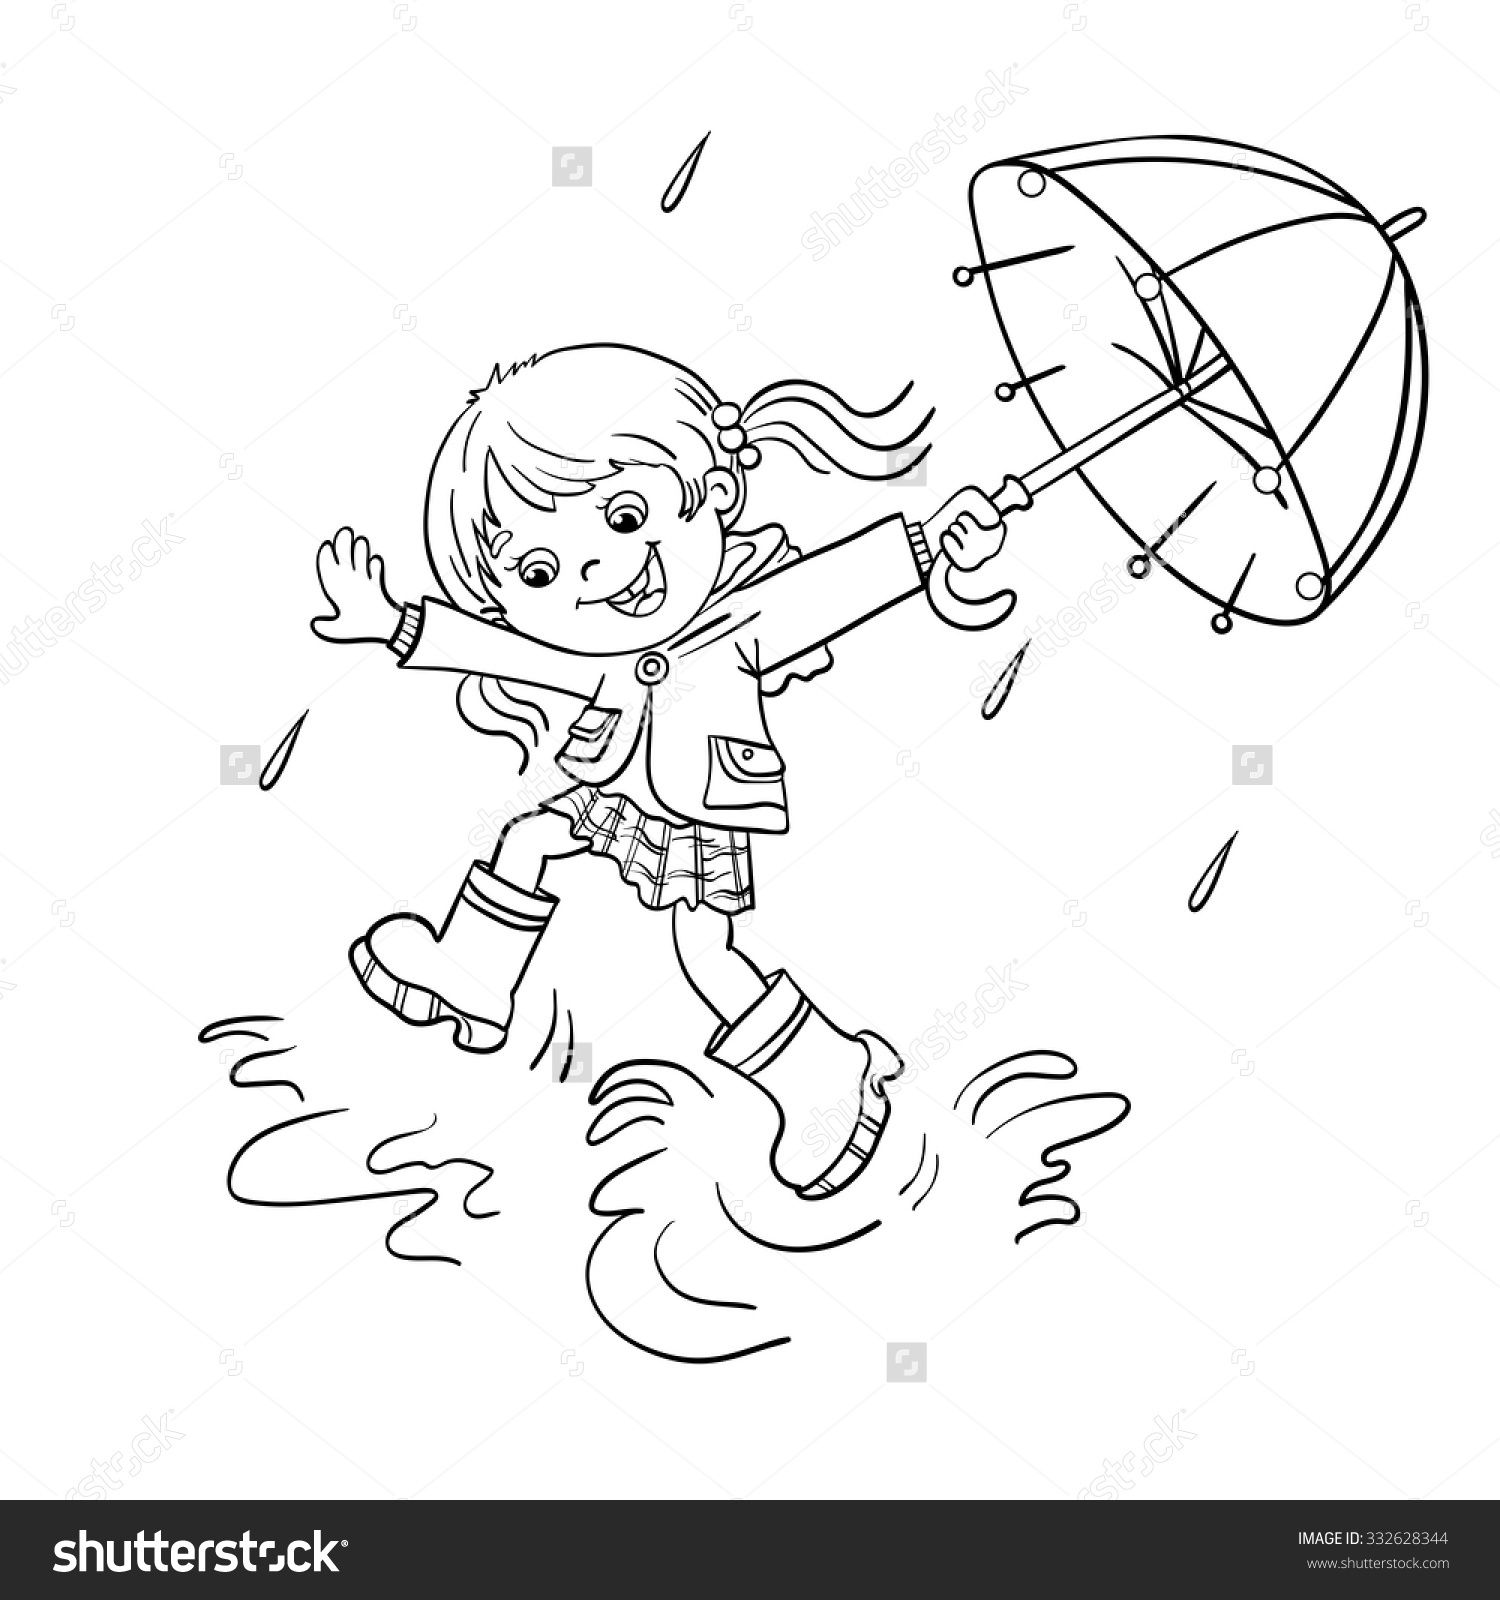 Winter painting pages - Playing In The Rain Coloring Pages Coloring Page Outline Of A Cartoon Joyful Girl Jumping Painting Templateswinter